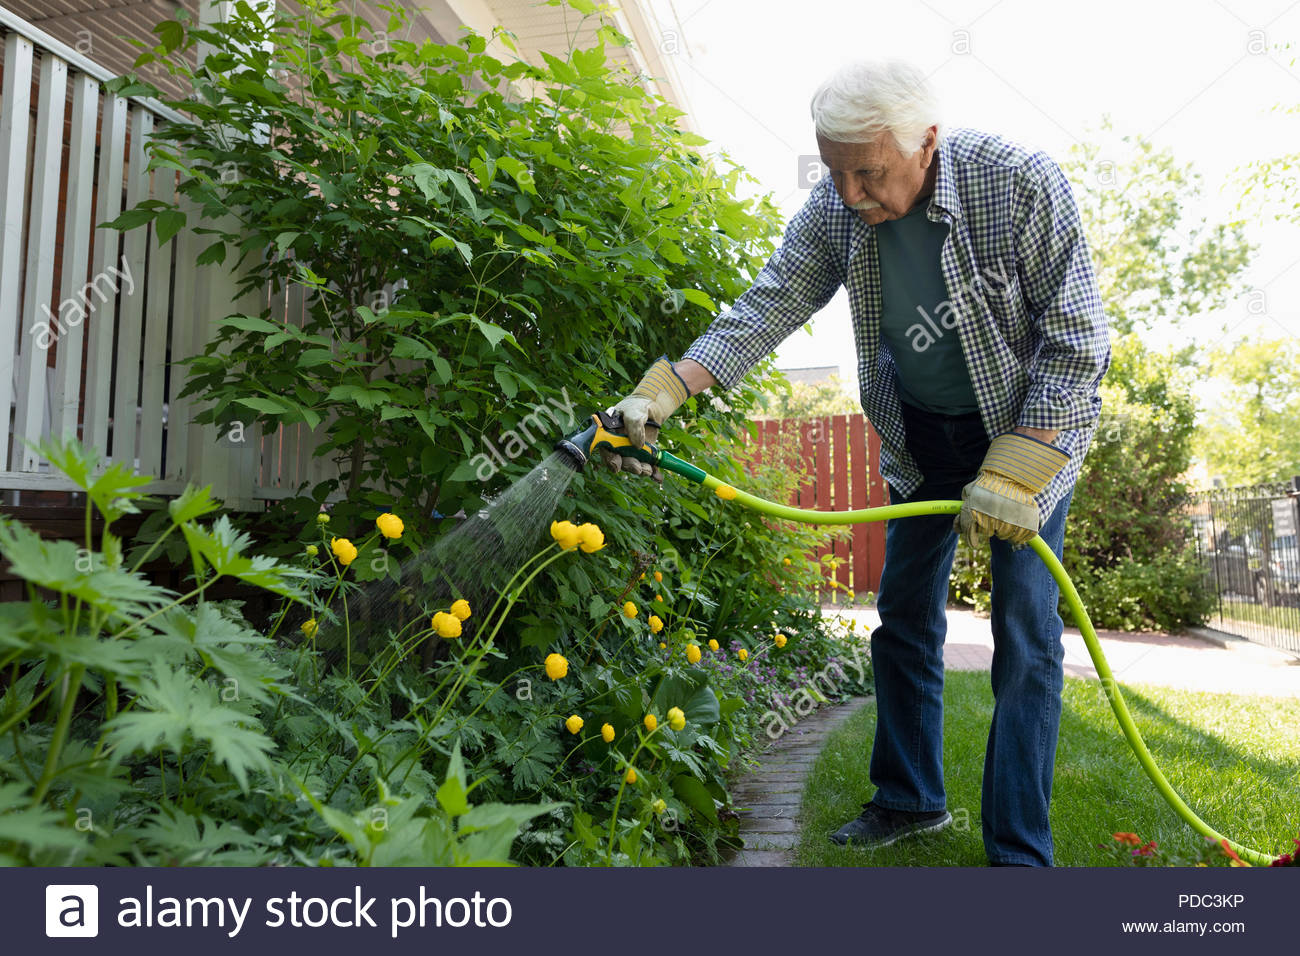 Senior man with hose watering garden - Stock Image